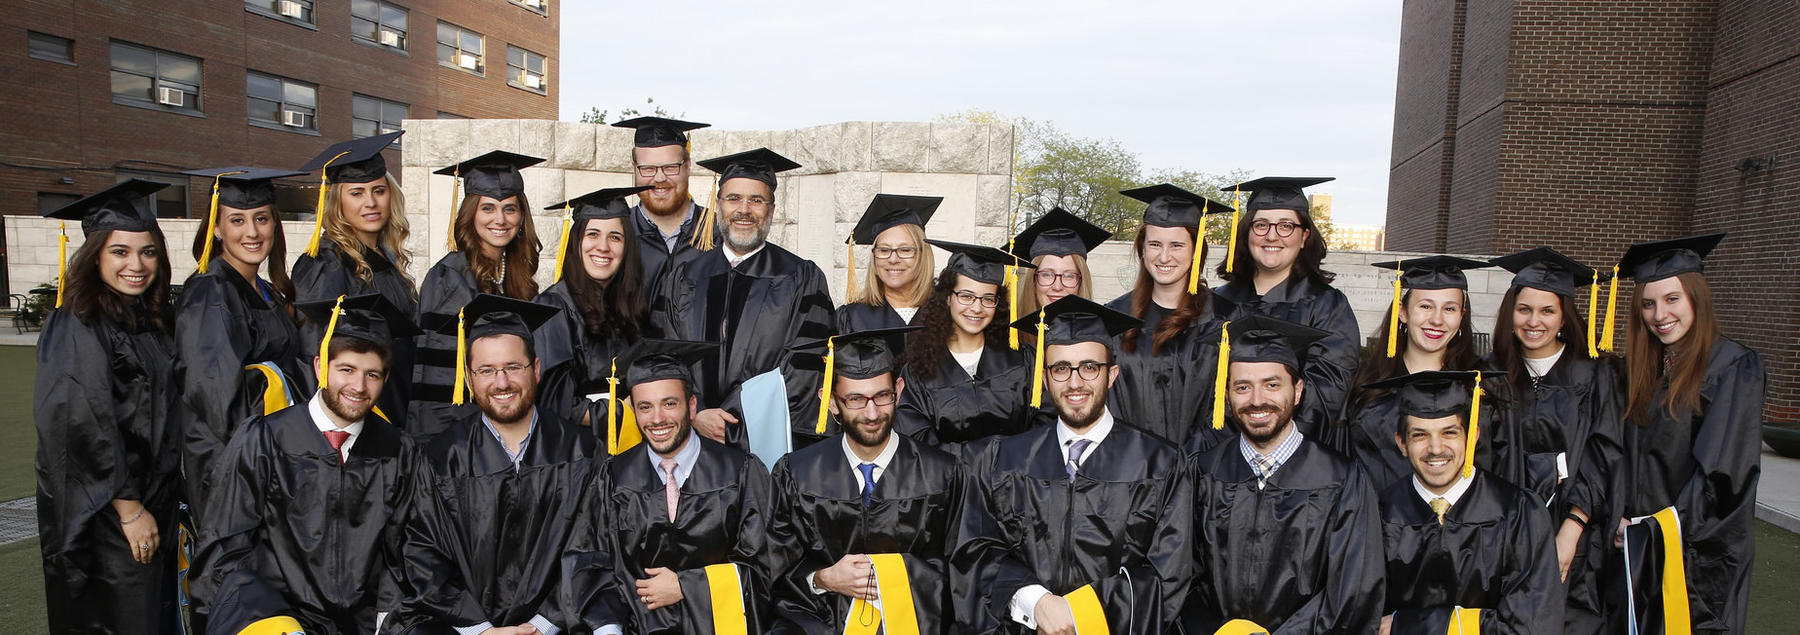 Azrieli students on graduation day